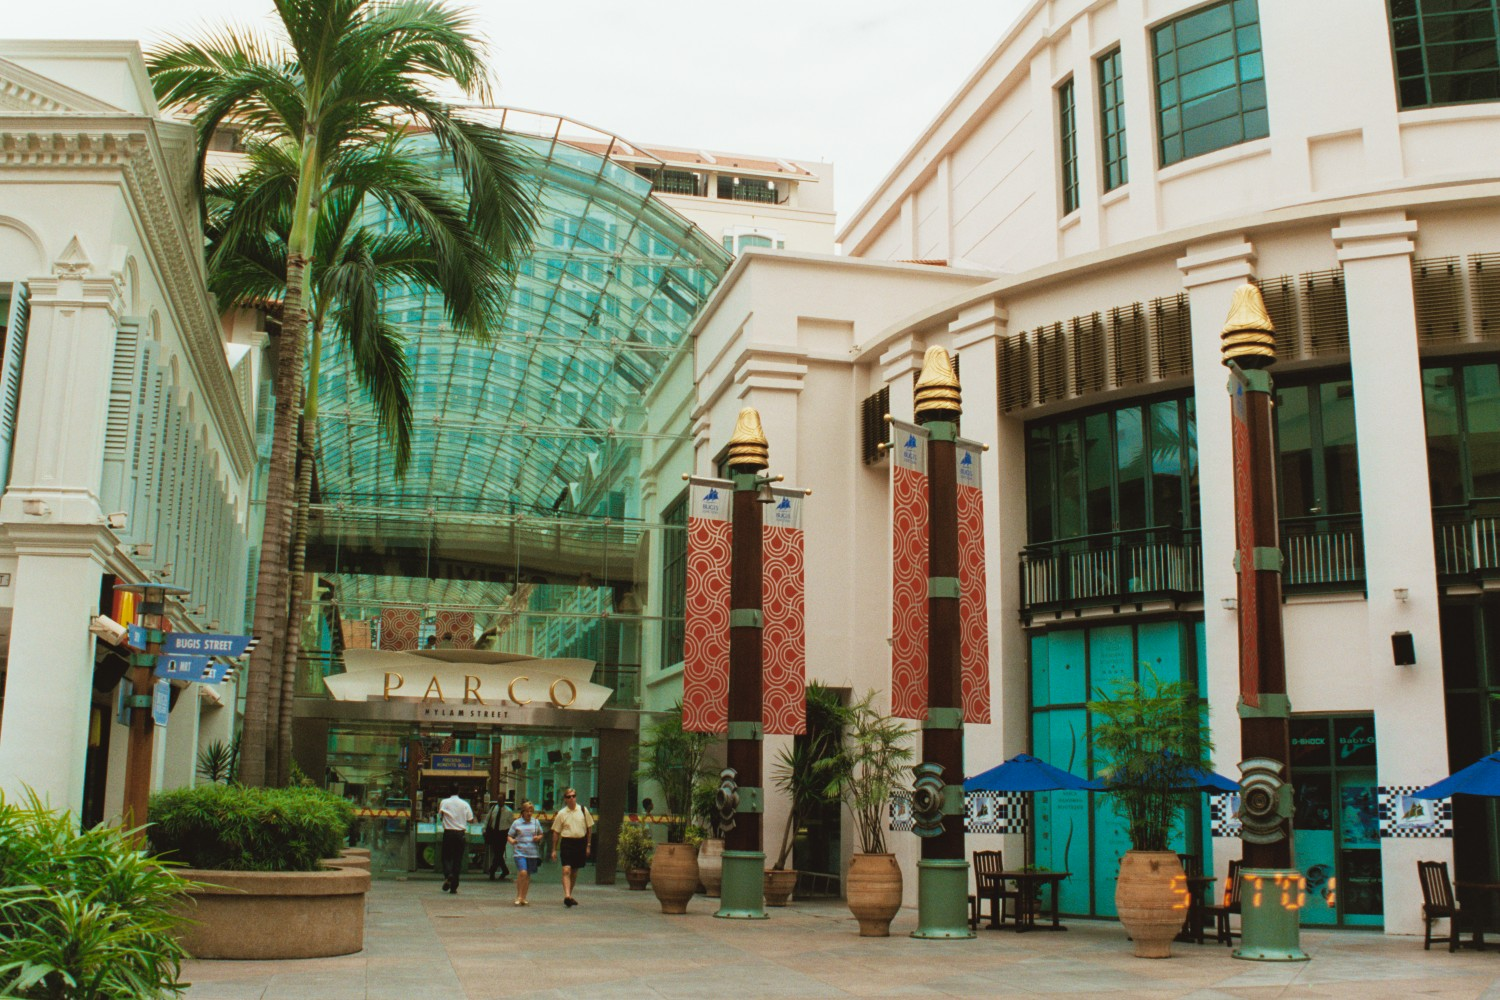 PARCO Bugis Junction